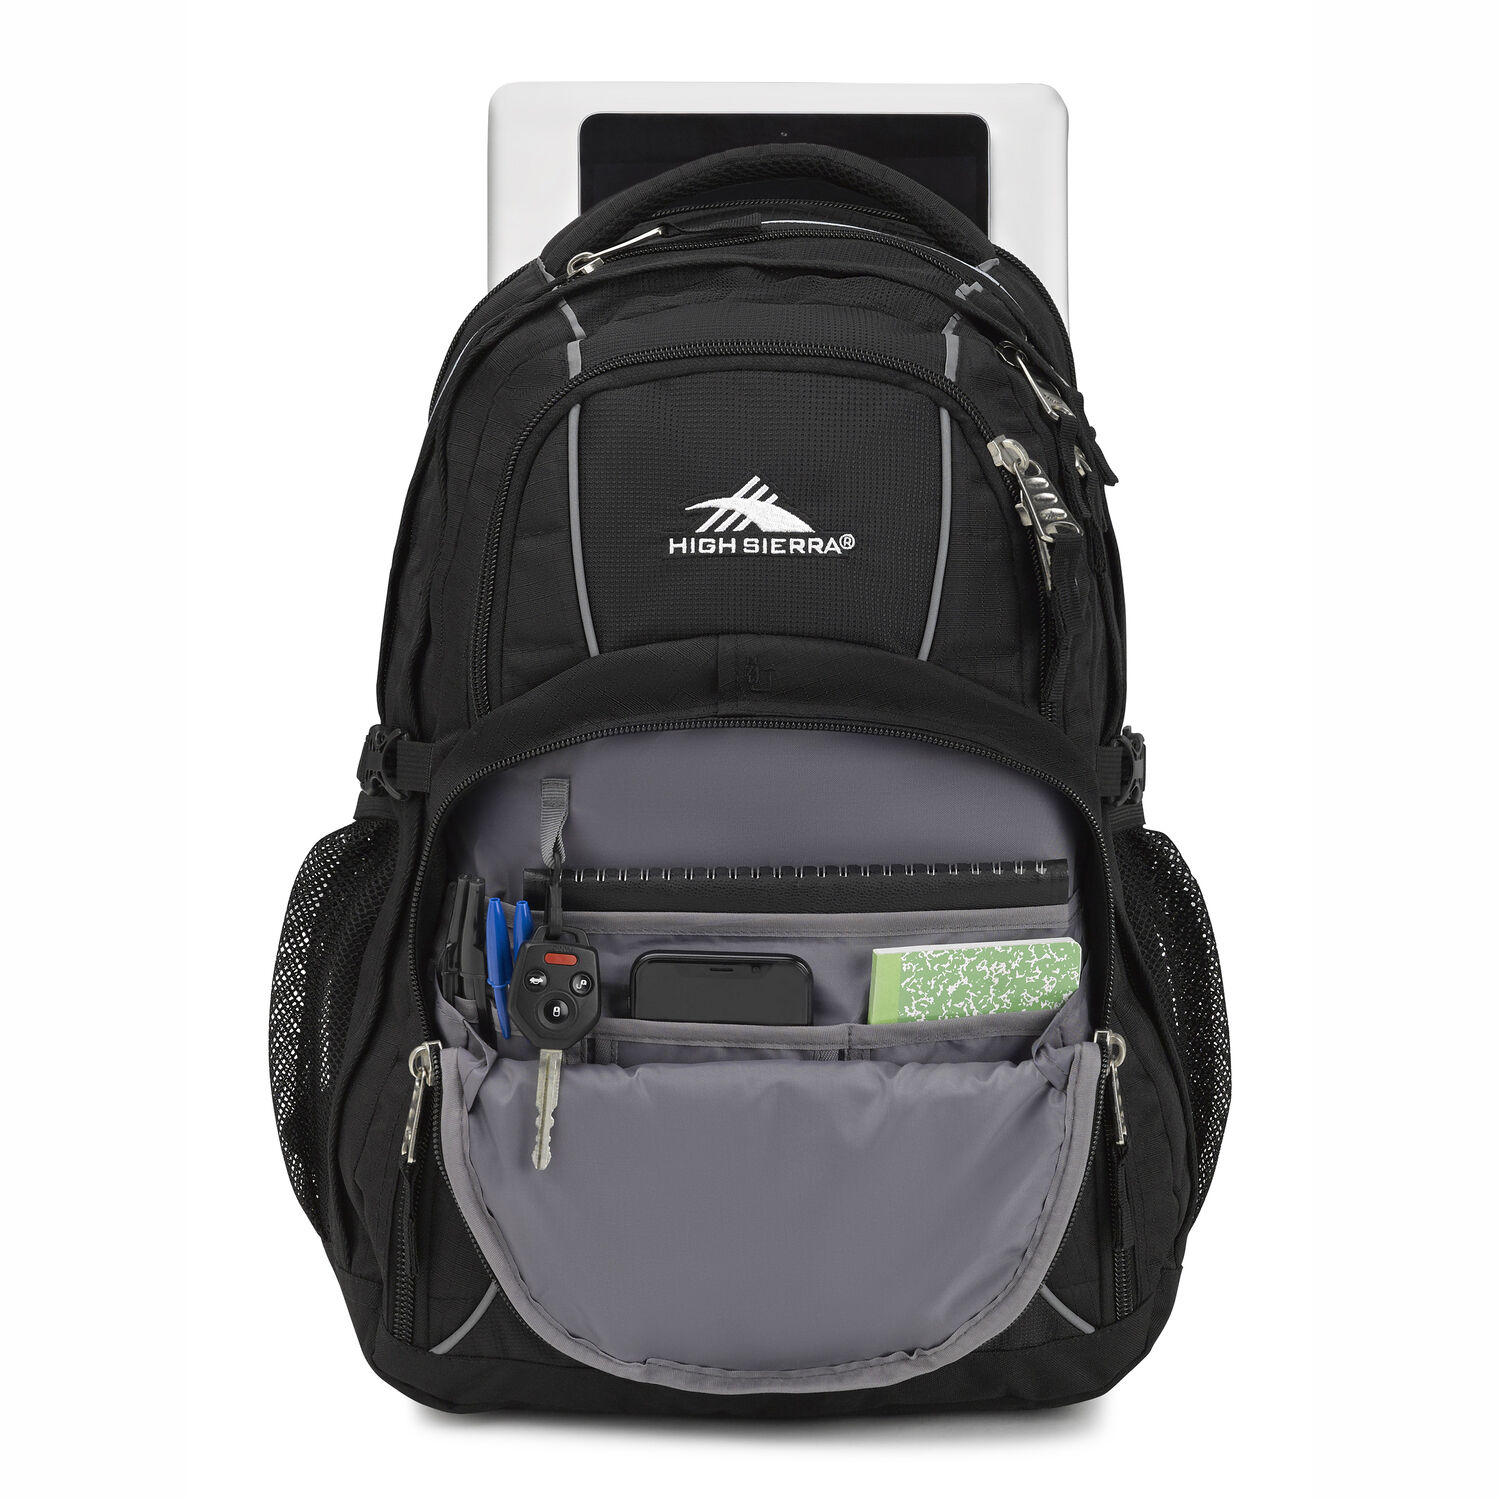 43e87315aba High Sierra Swerve Backpack in the color Black.